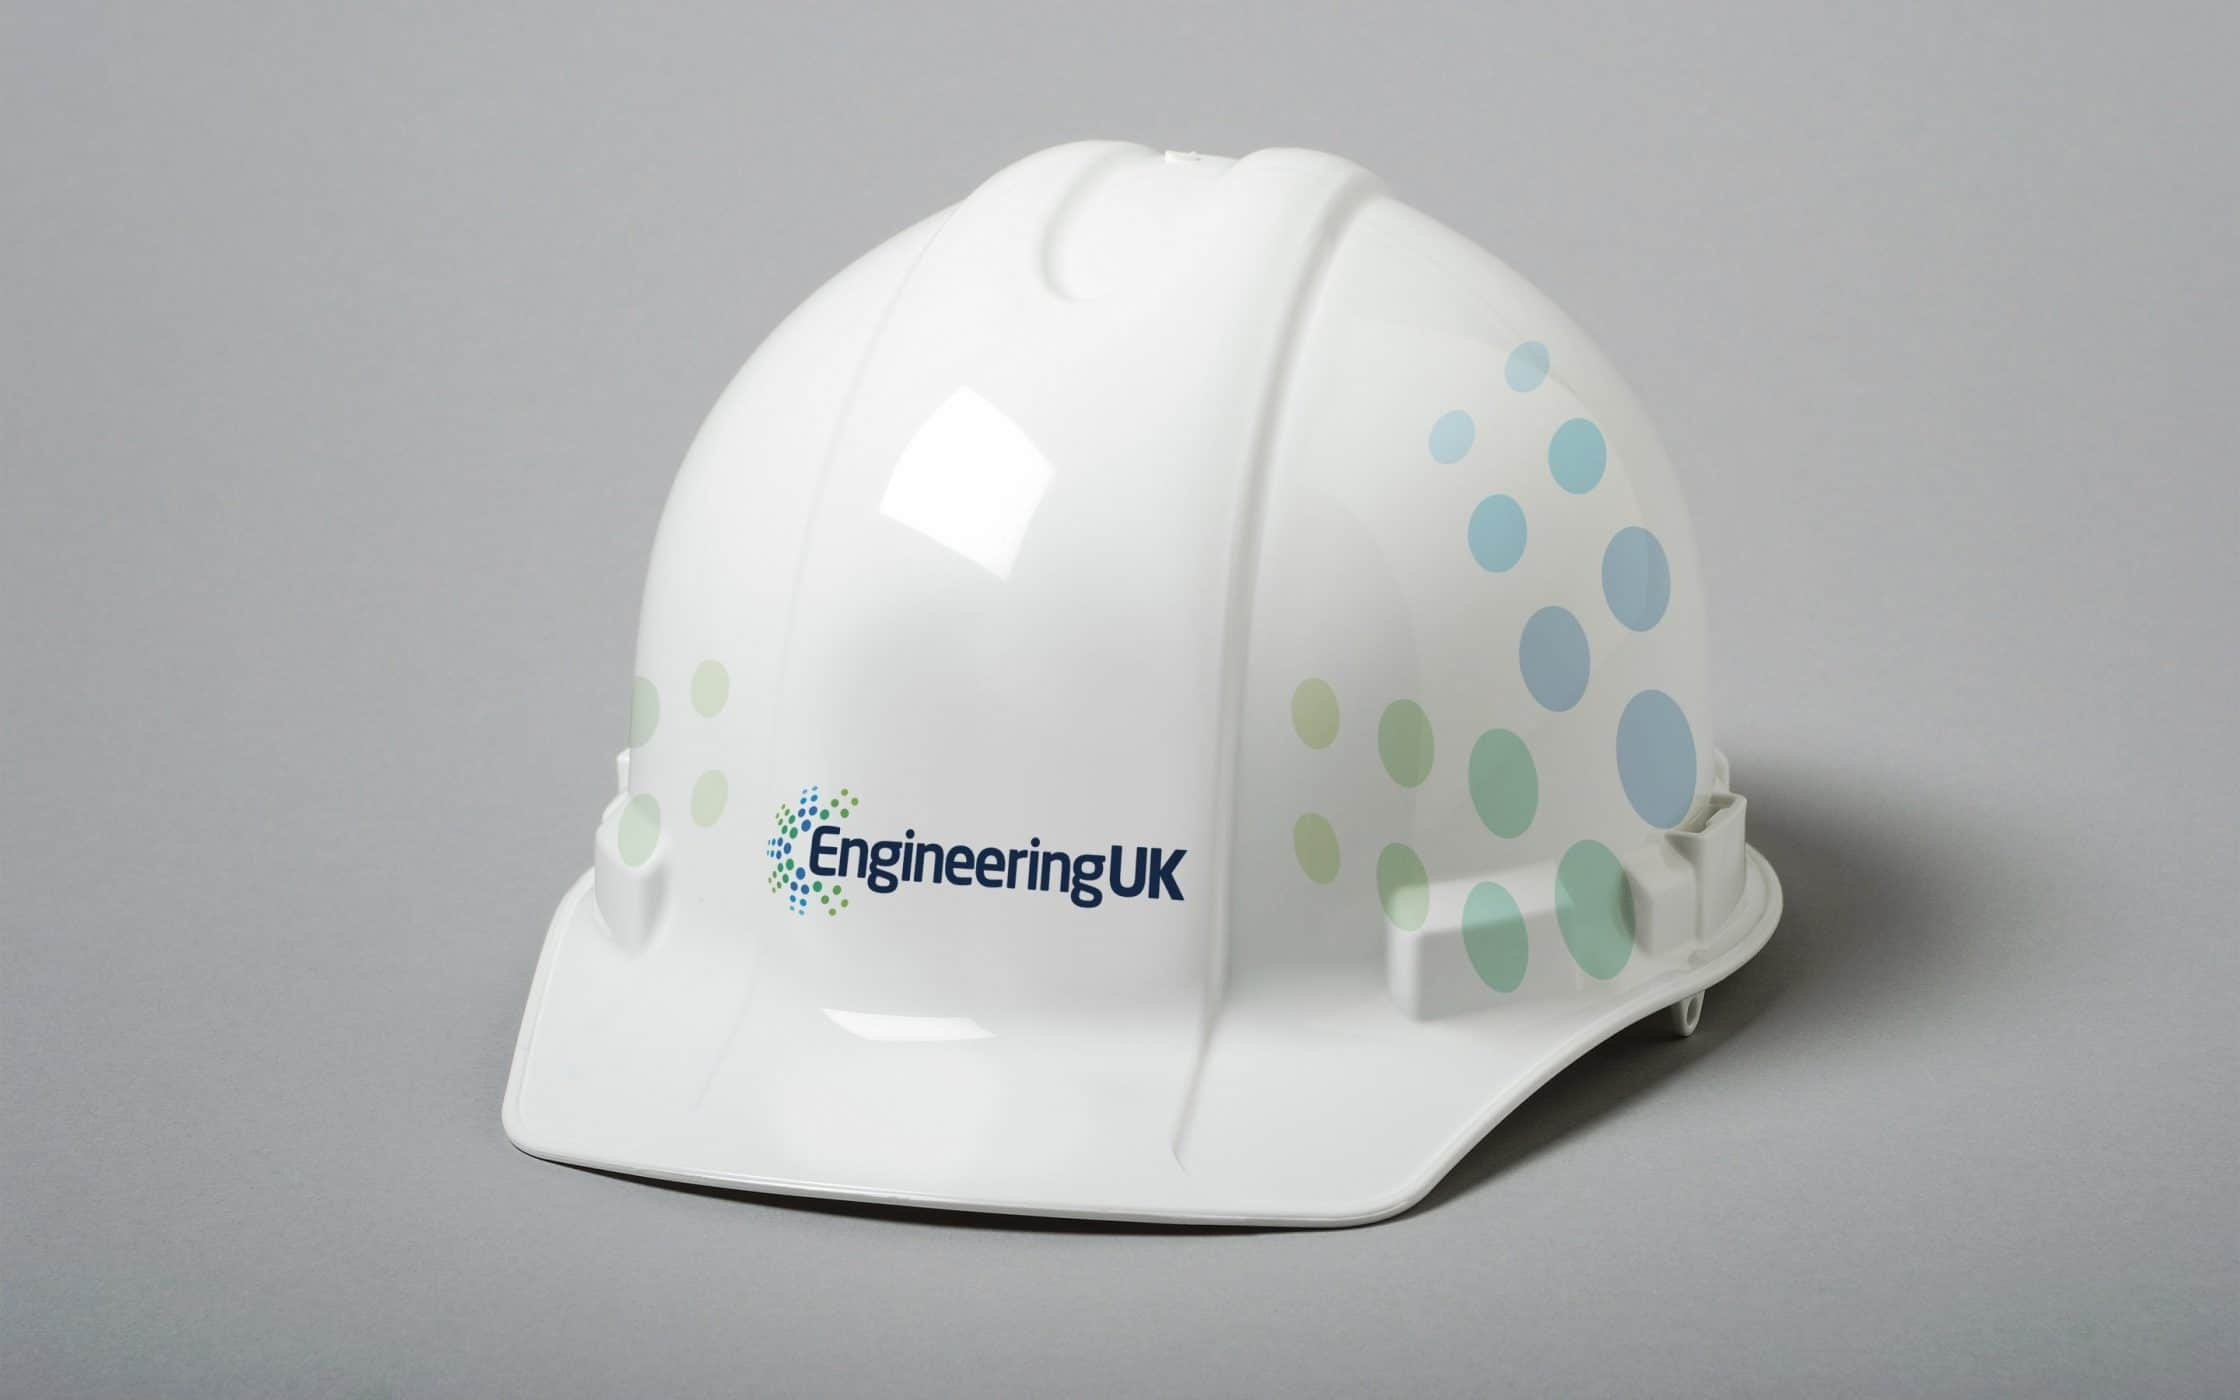 EngineeringUK